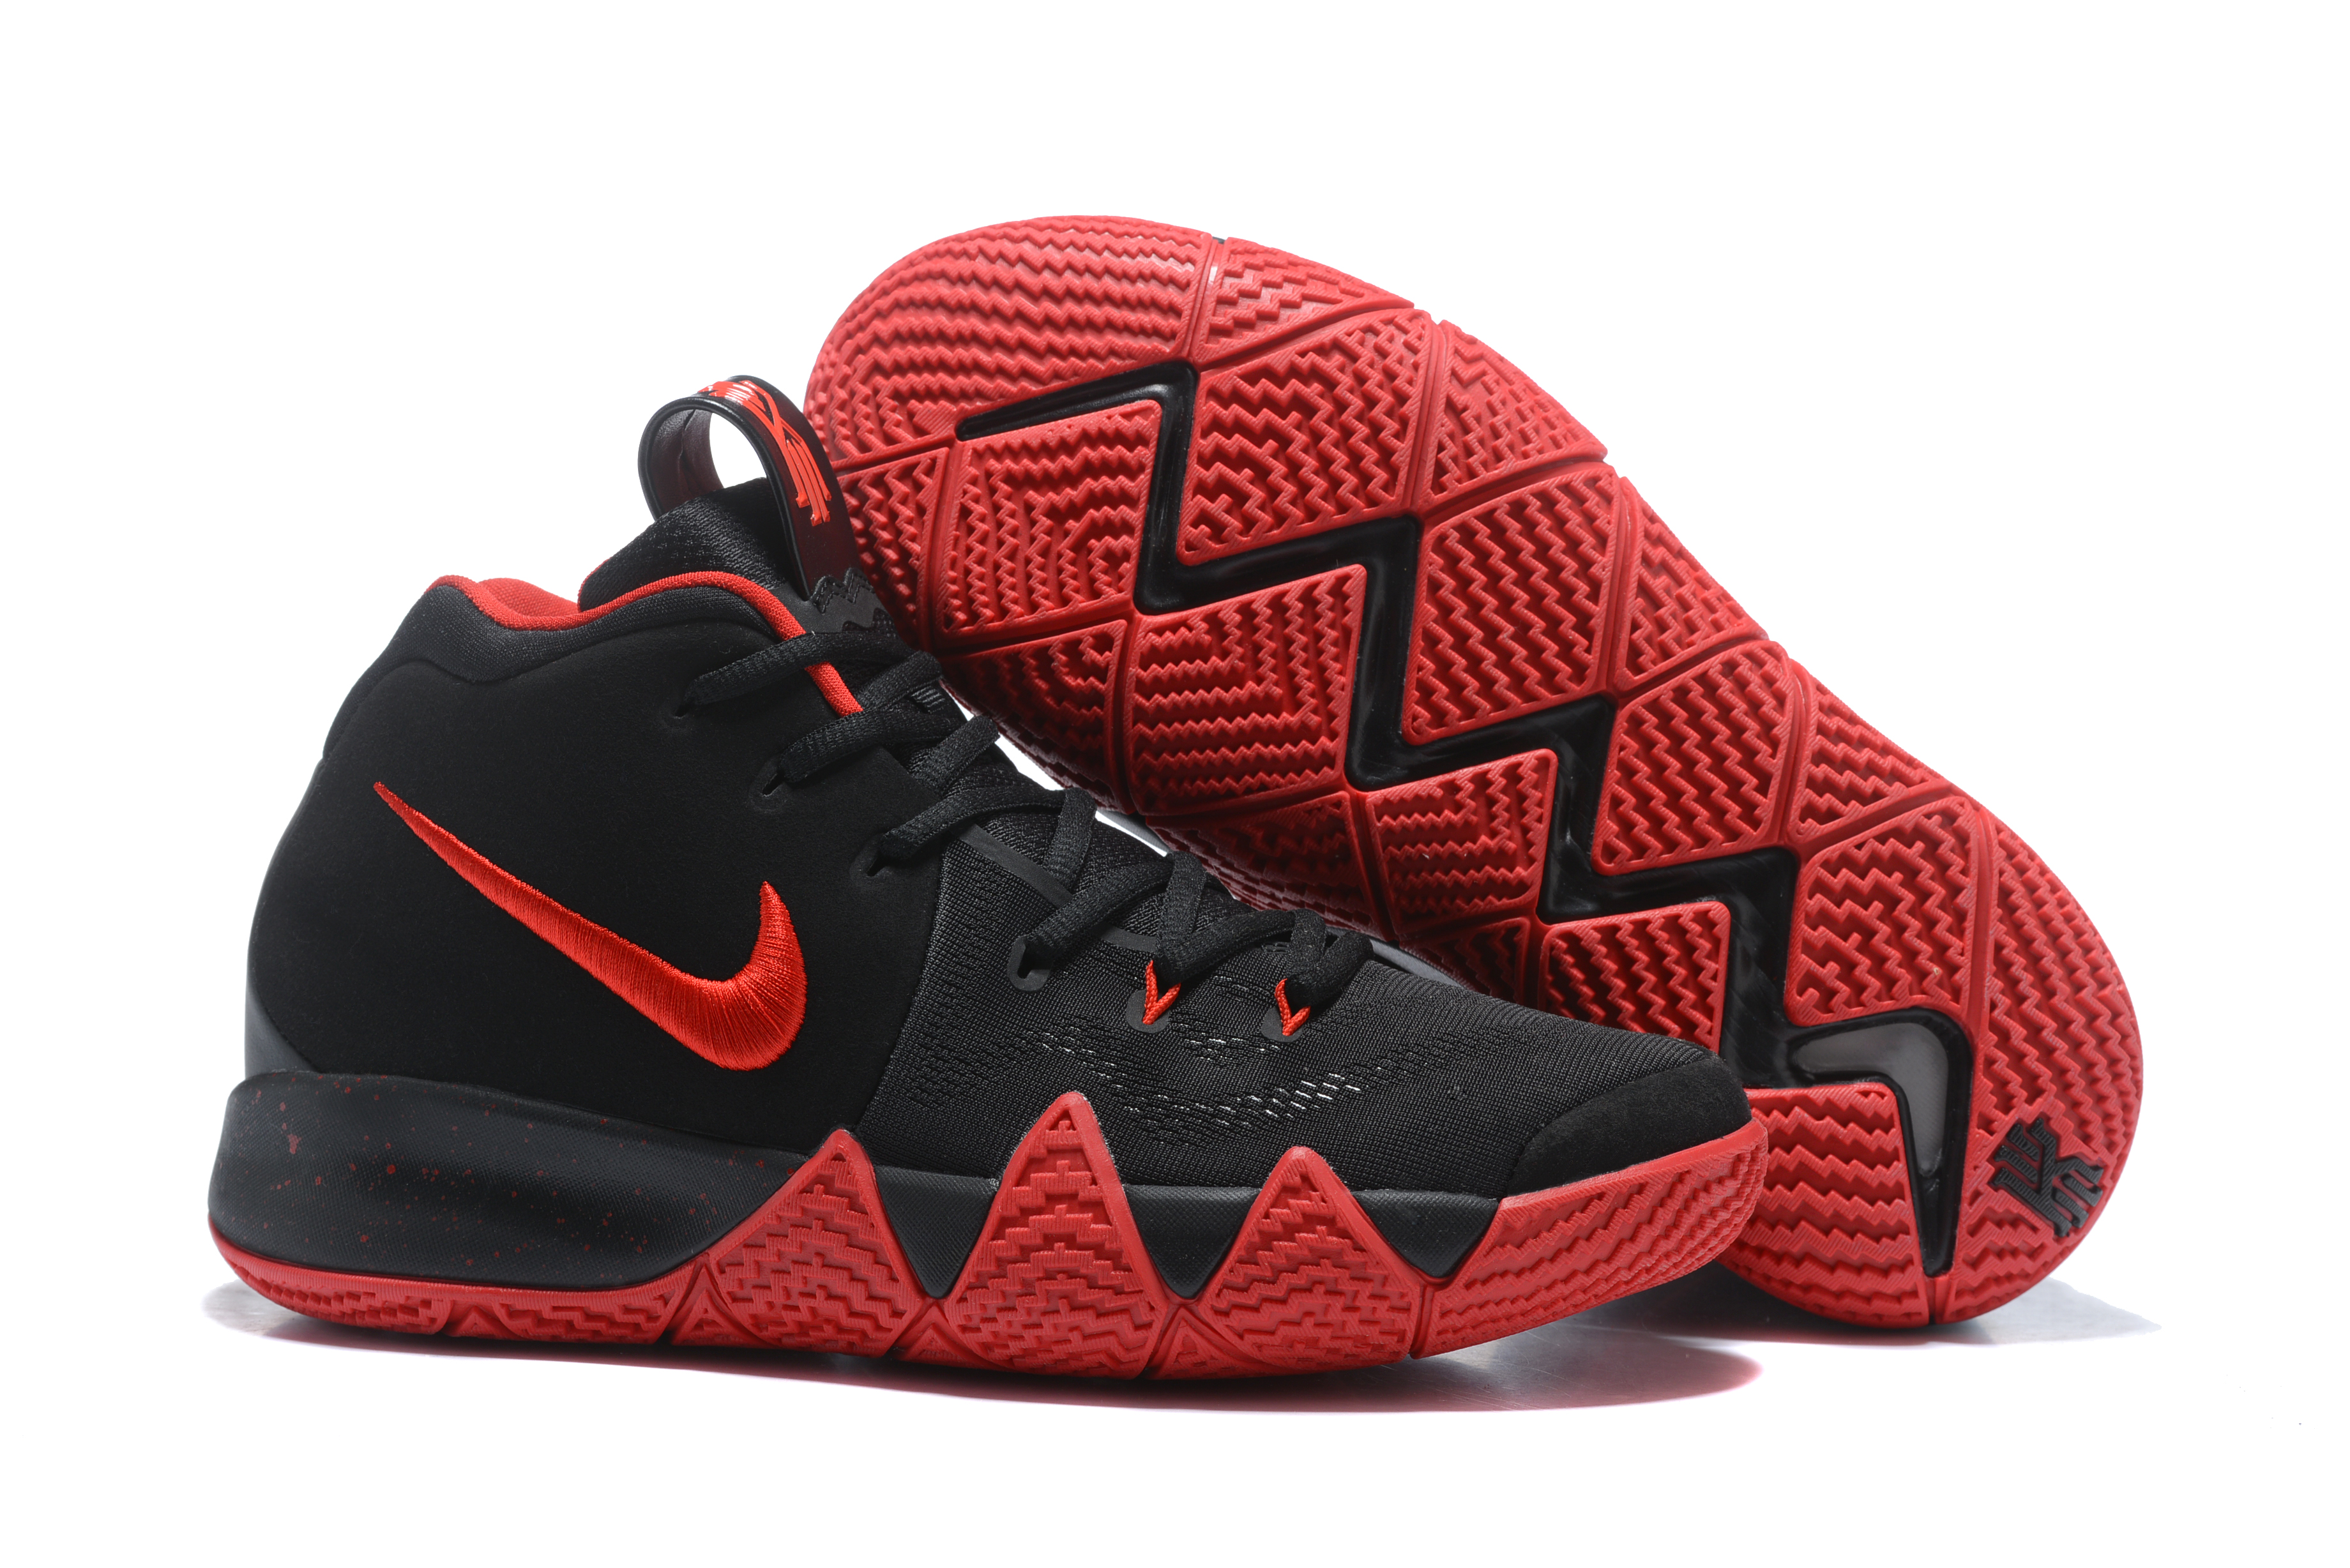 2017 Nike Kyrie 4 Black Red Basketball Shoes